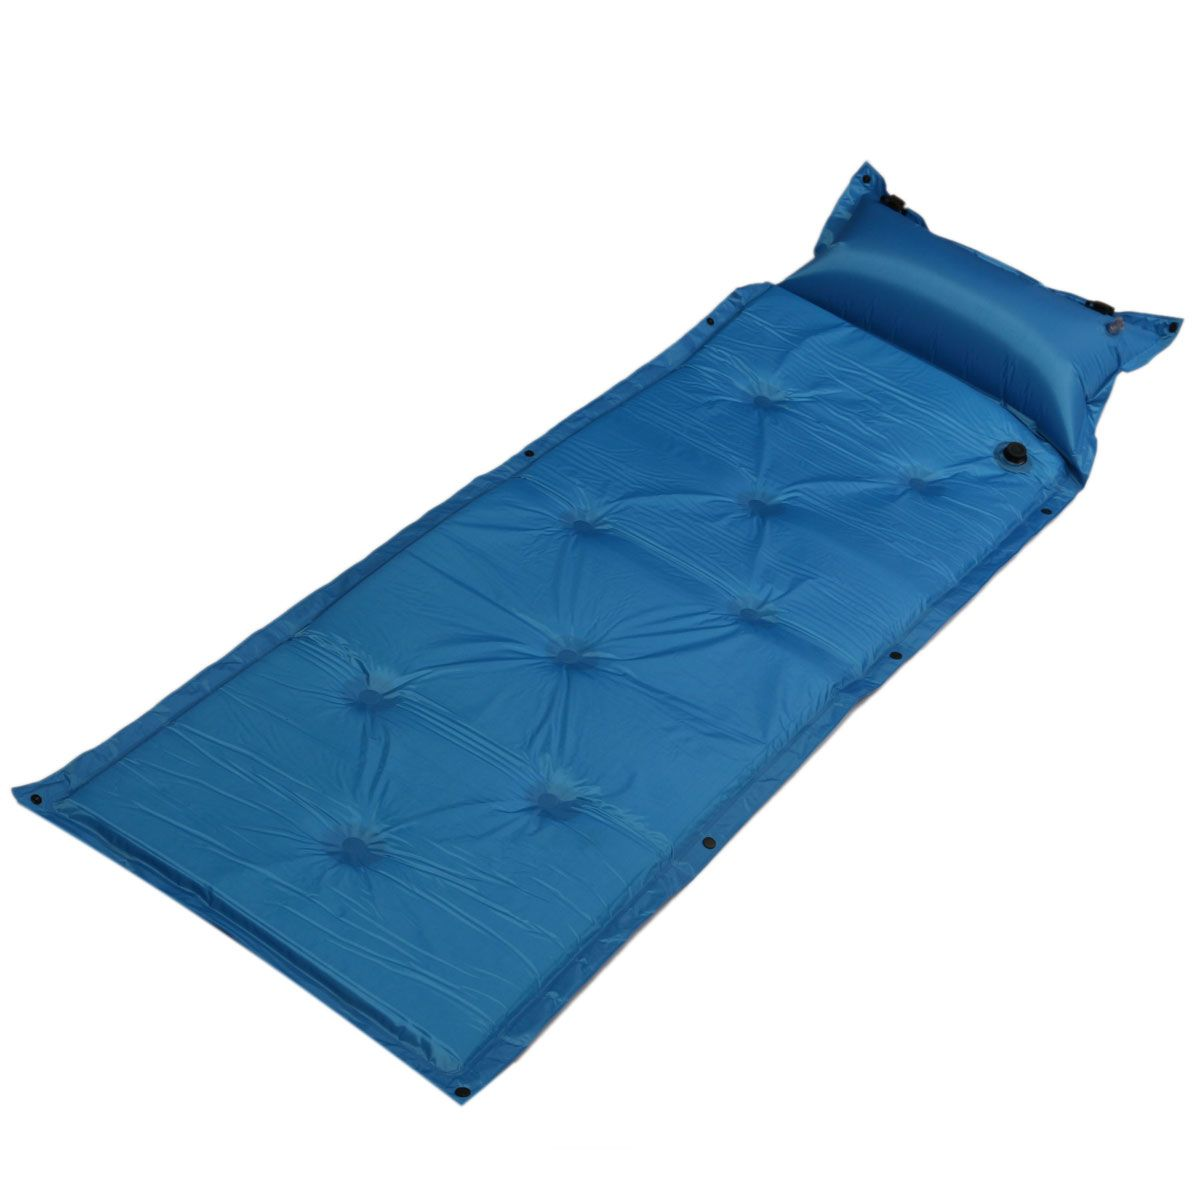 Outdoor Polyester Camping Self Inflating Air Mat Mattress Pad Pillow Waterproof Hiking Sleeping Bed 4 Colors Walmart Com Mattress Pad Sleeping In Bed Inflatable Bed